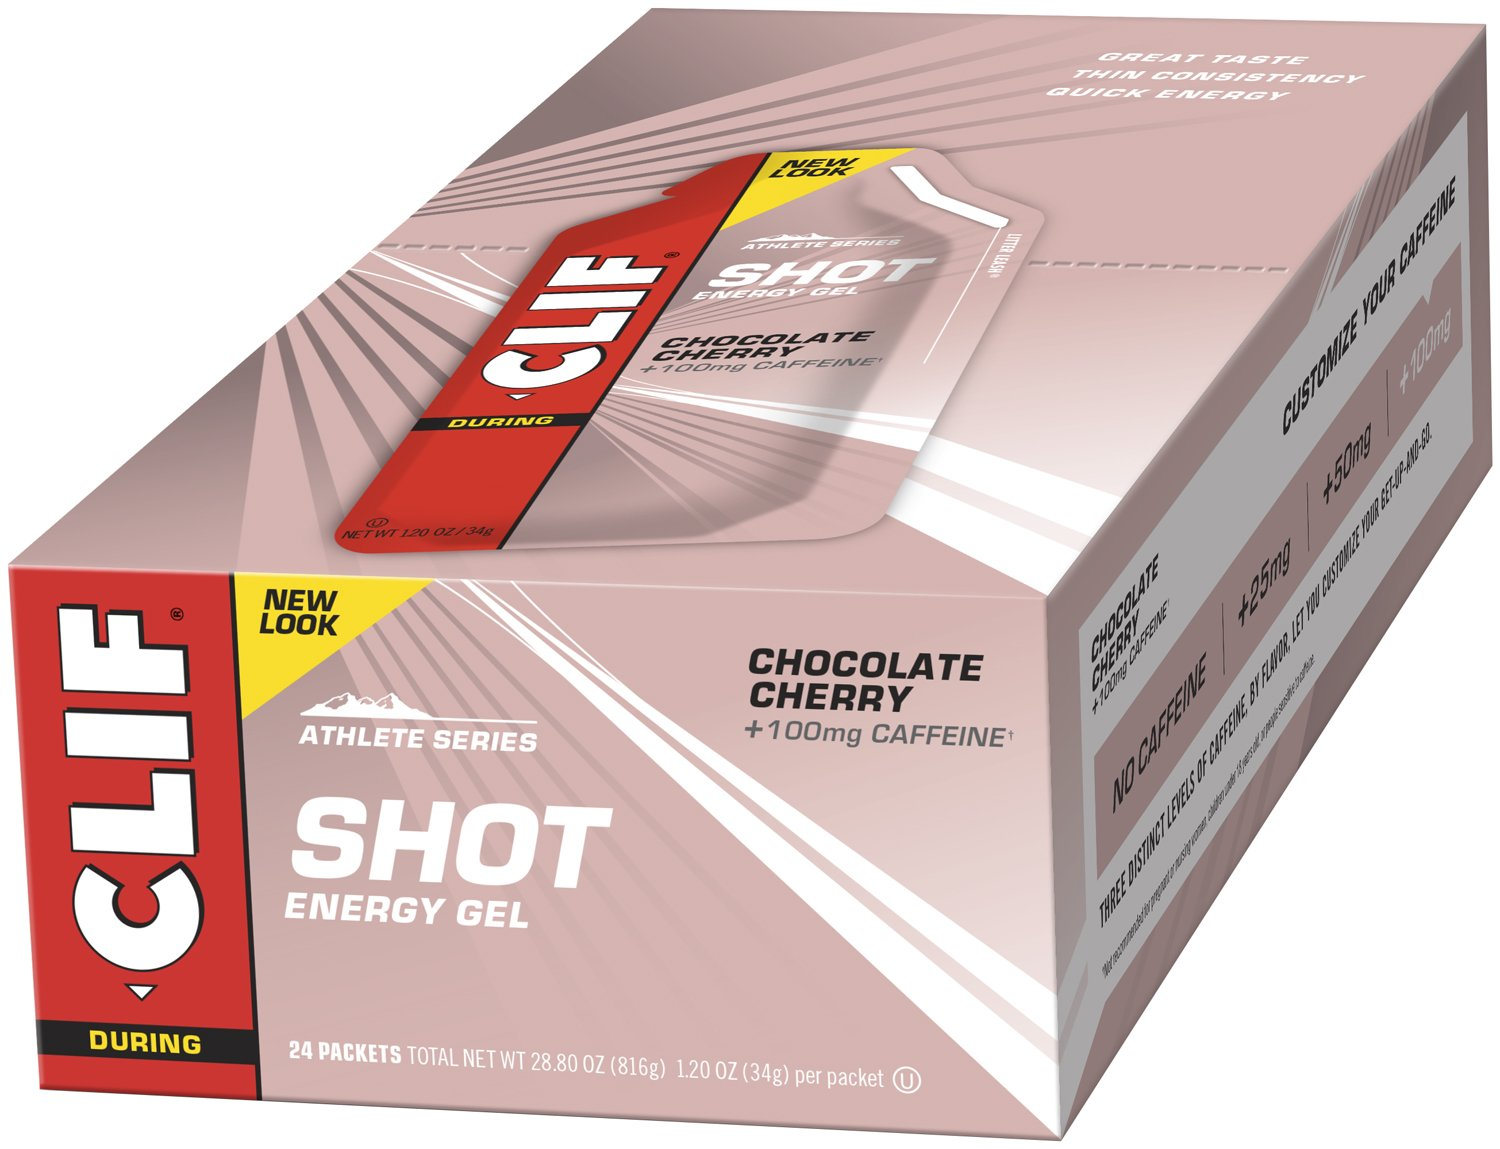 CLIF SHOT - Energy Gel - Chocolate Cherry - With Caffeine 1.2 Ounce Packet, 24 Count